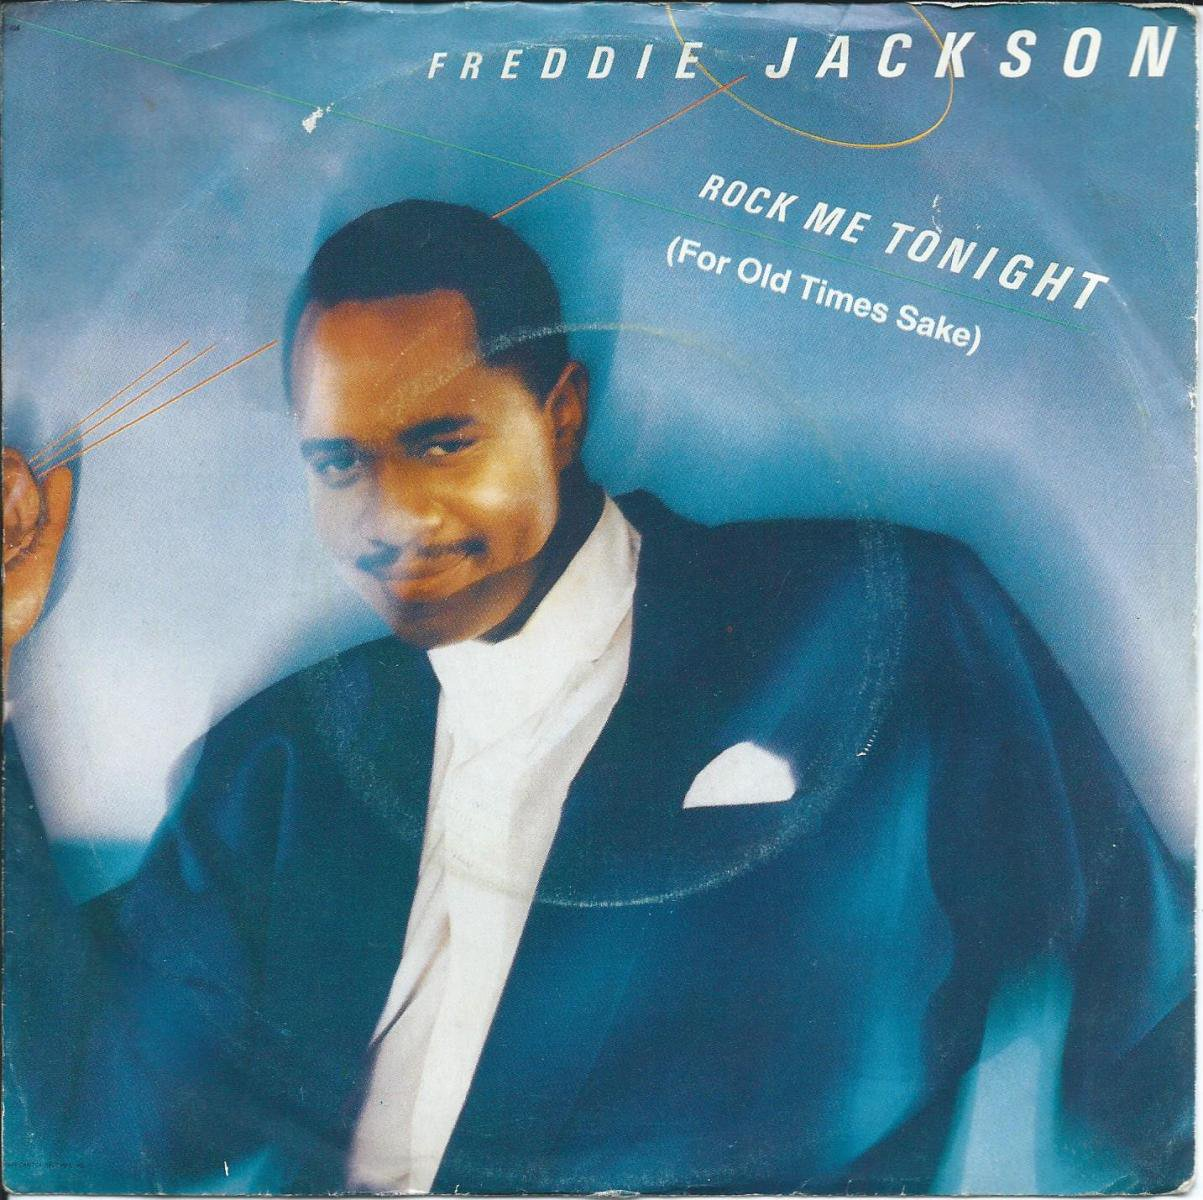 FREDDIE JACKSON / ROCK ME TONIGHT (FOR OLD TIMES SAKE) (7